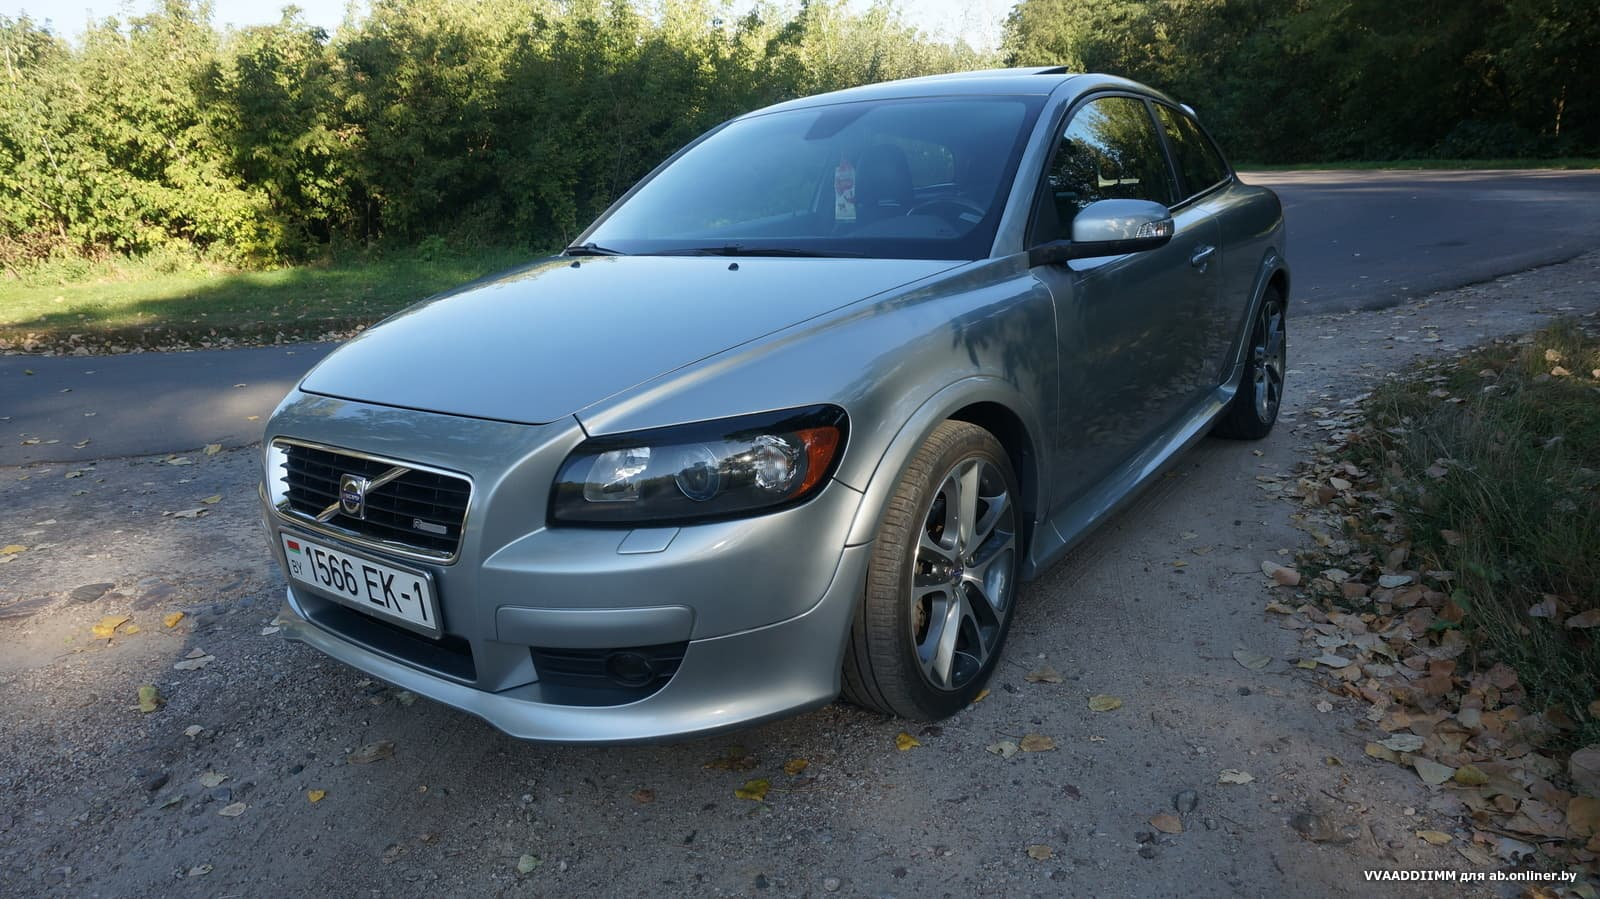 Volvo C30 2.5 turbo